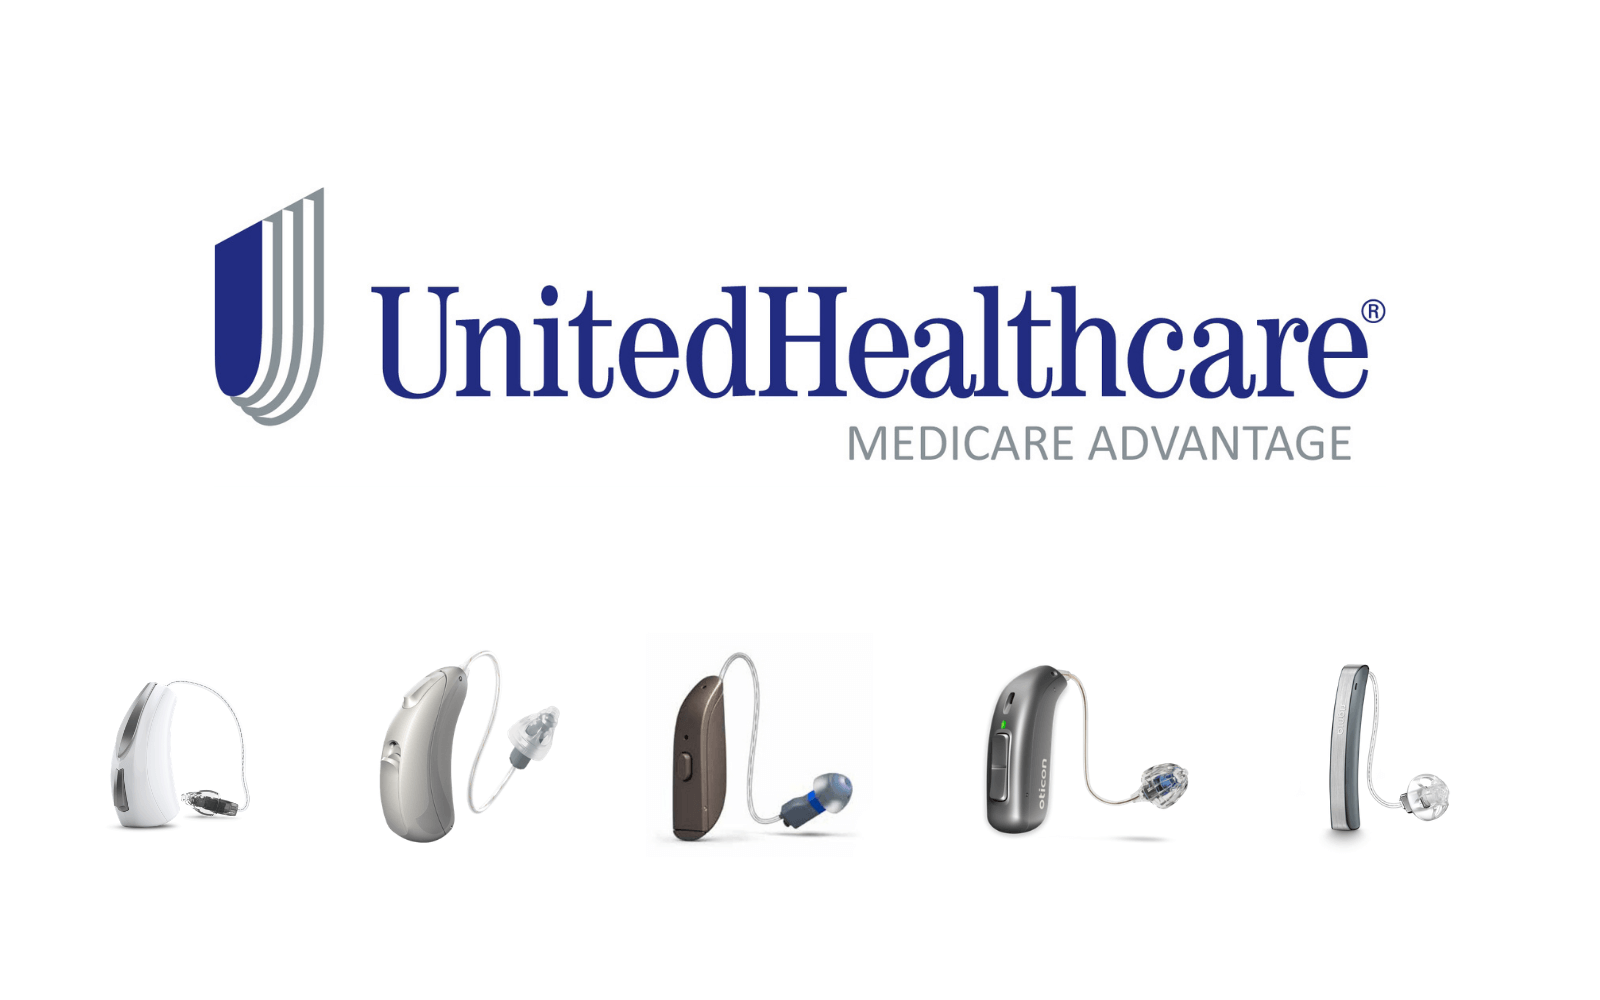 hearing aid prices for united healthcare advantage